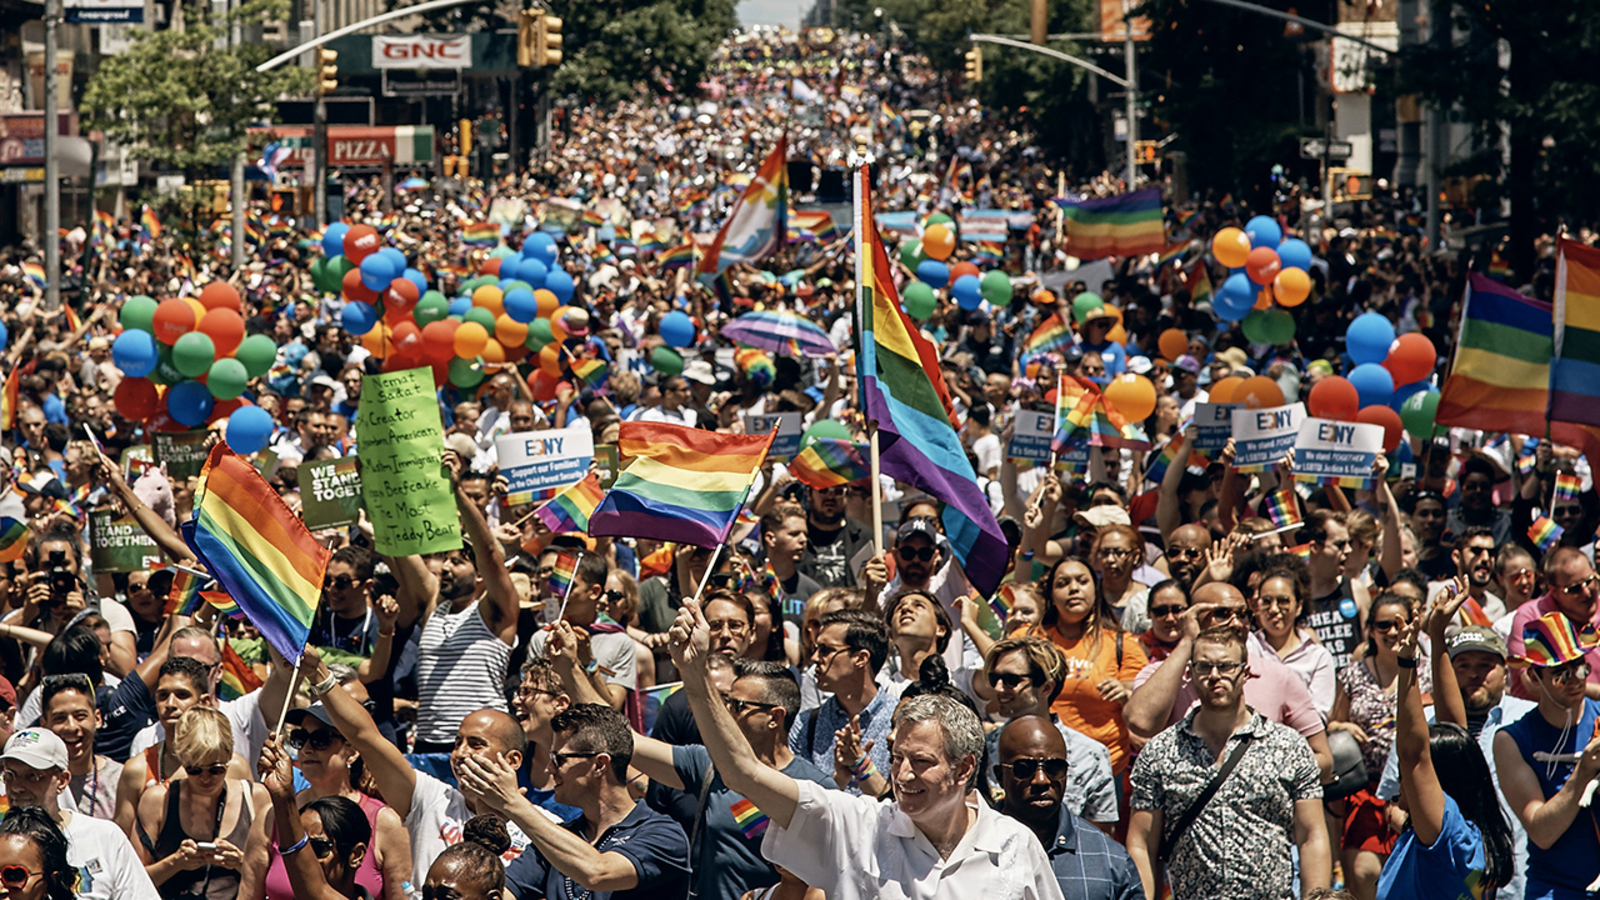 NYC Pride / WorldPride / Stonewall50 -